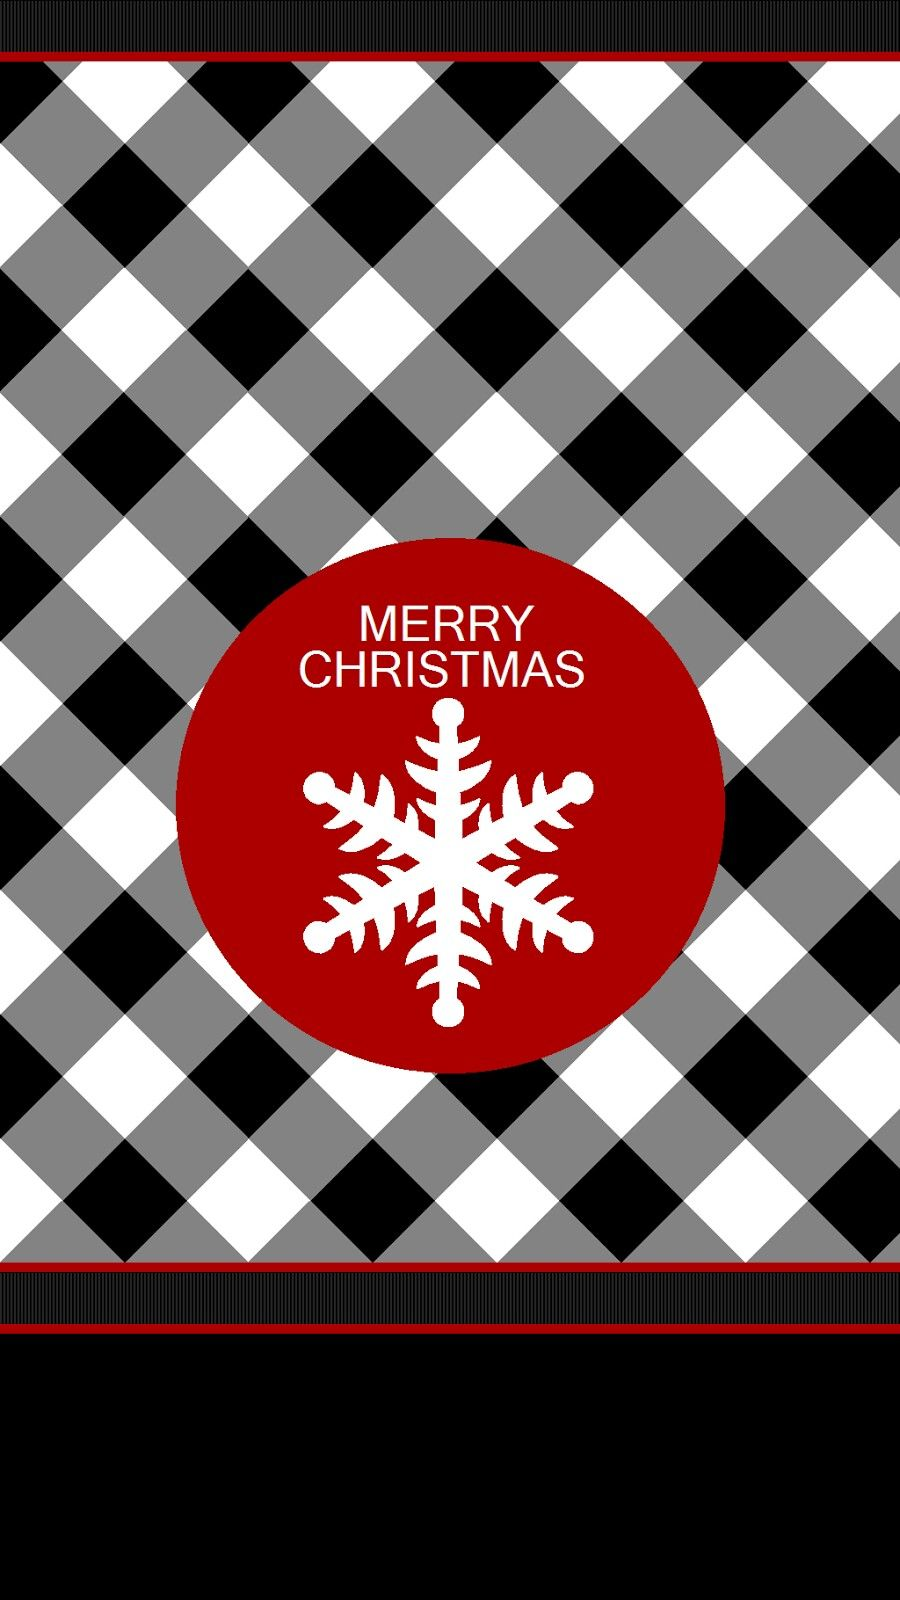 Pin by yuli arif on x mas wall pinterest wallpaper holiday christmas phone wallpaper christmas wallpaper iphone backgrounds wallpaper backgrounds hello kitty wallpaper cellphone wallpaper wallpapers android voltagebd Image collections